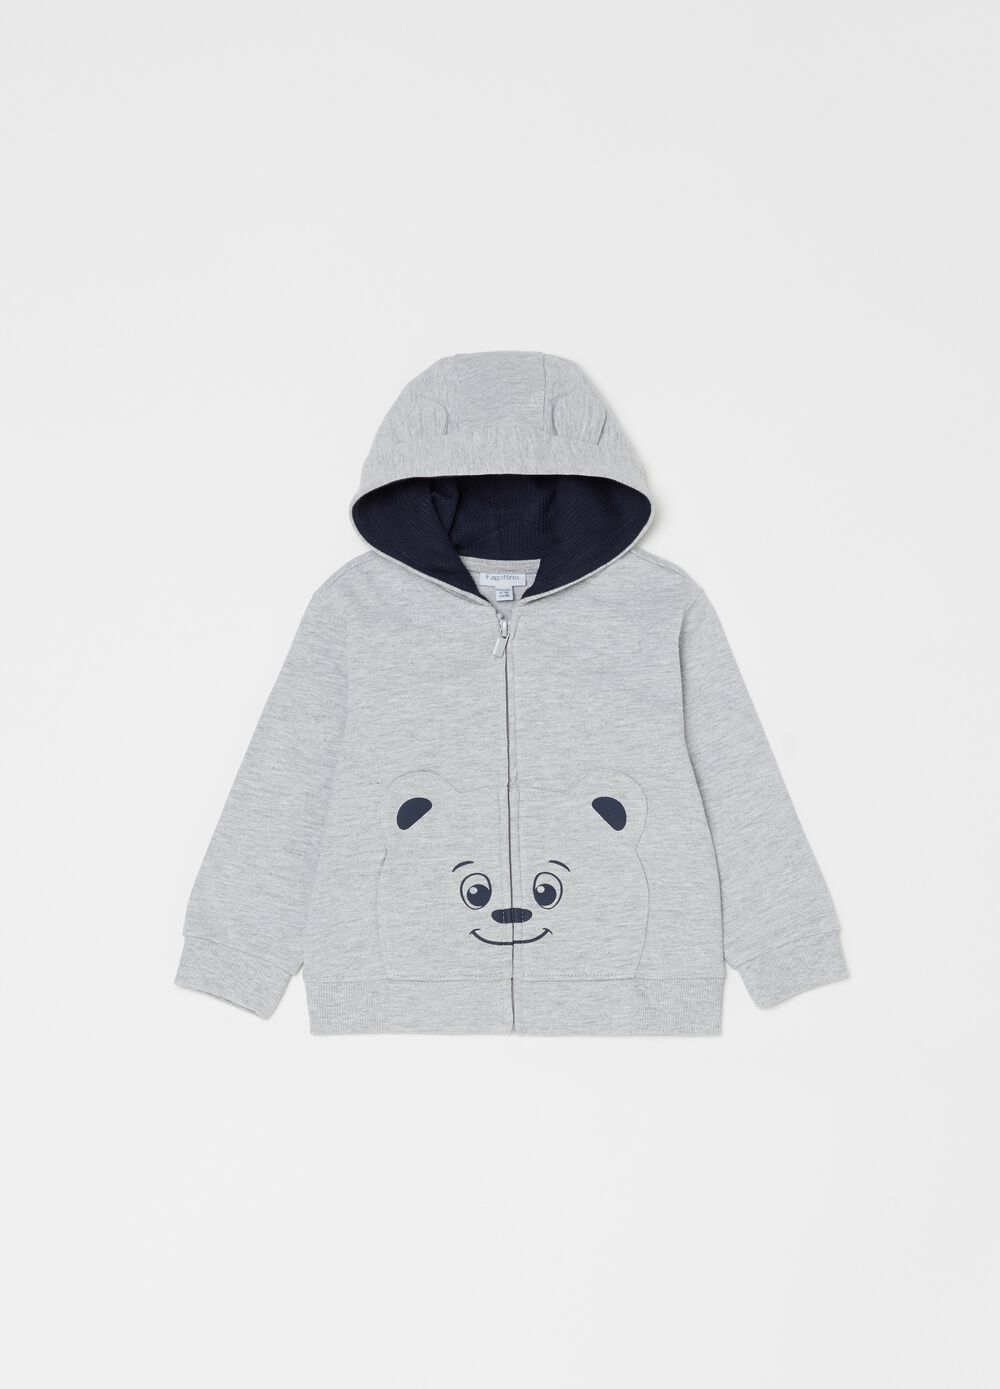 Organic cotton mélange full-zip sweatshirt with teddy bear